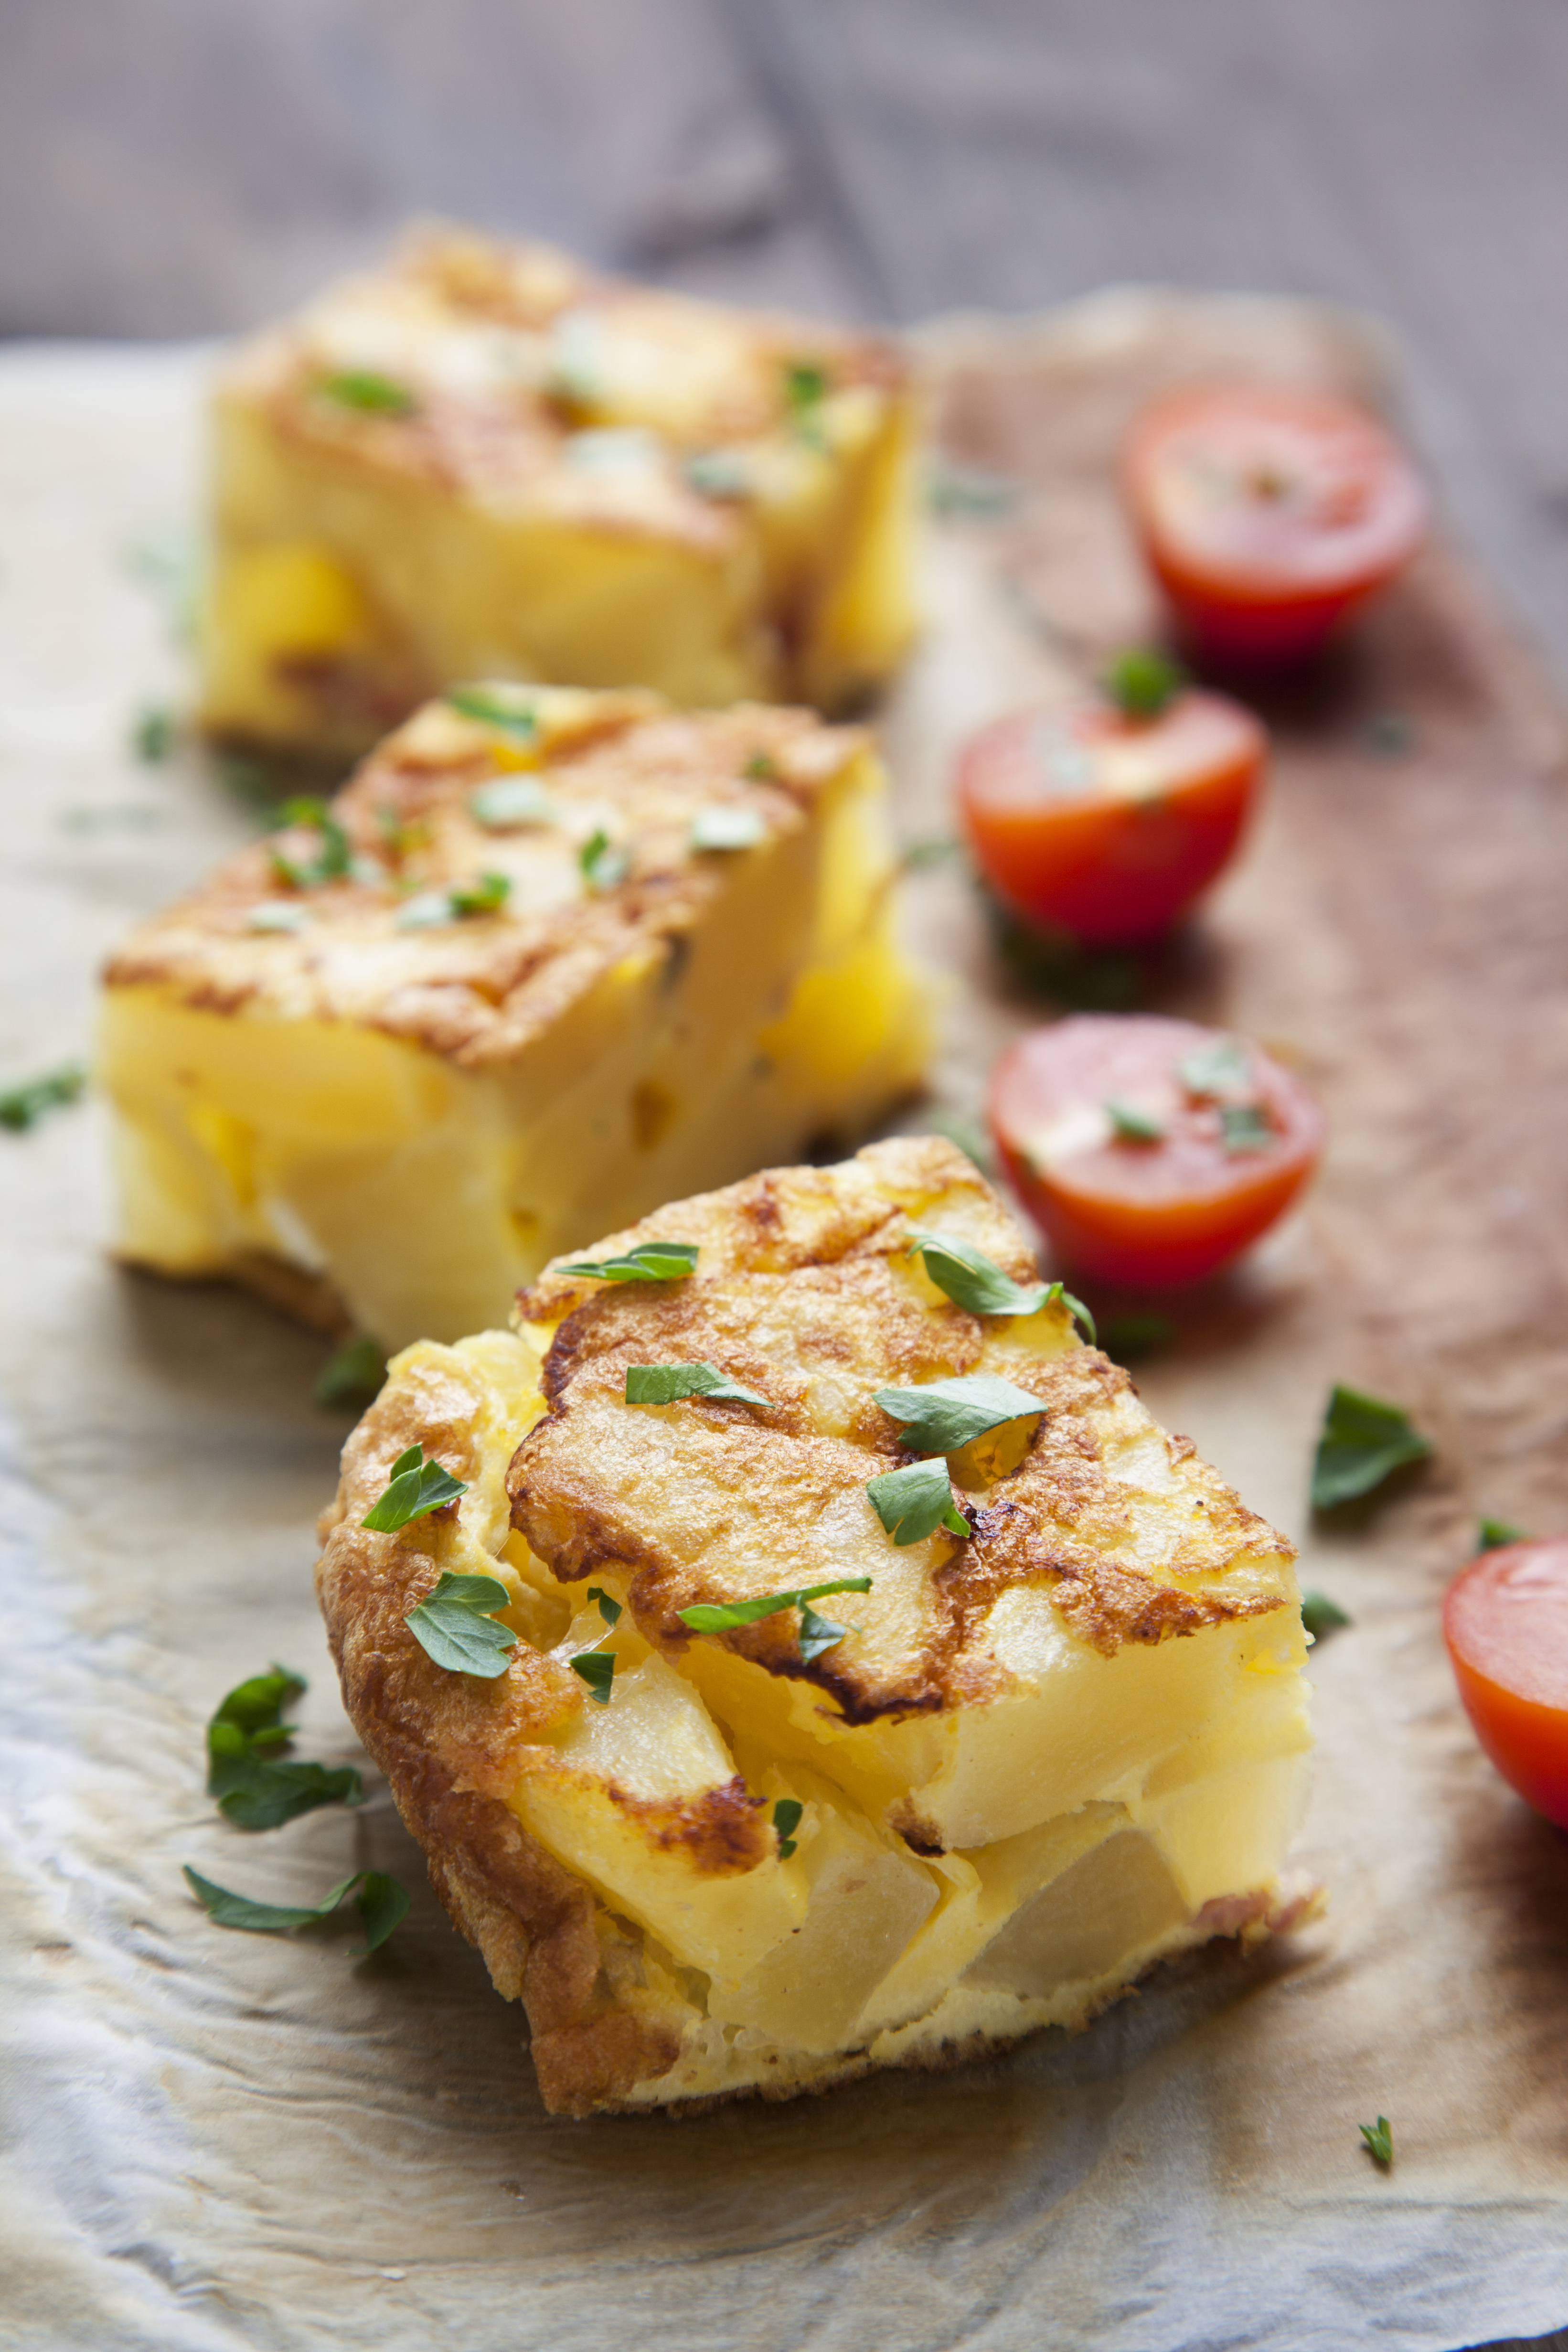 homemade potato frittata with tomatoes and parsley raw on wooden table seen from above